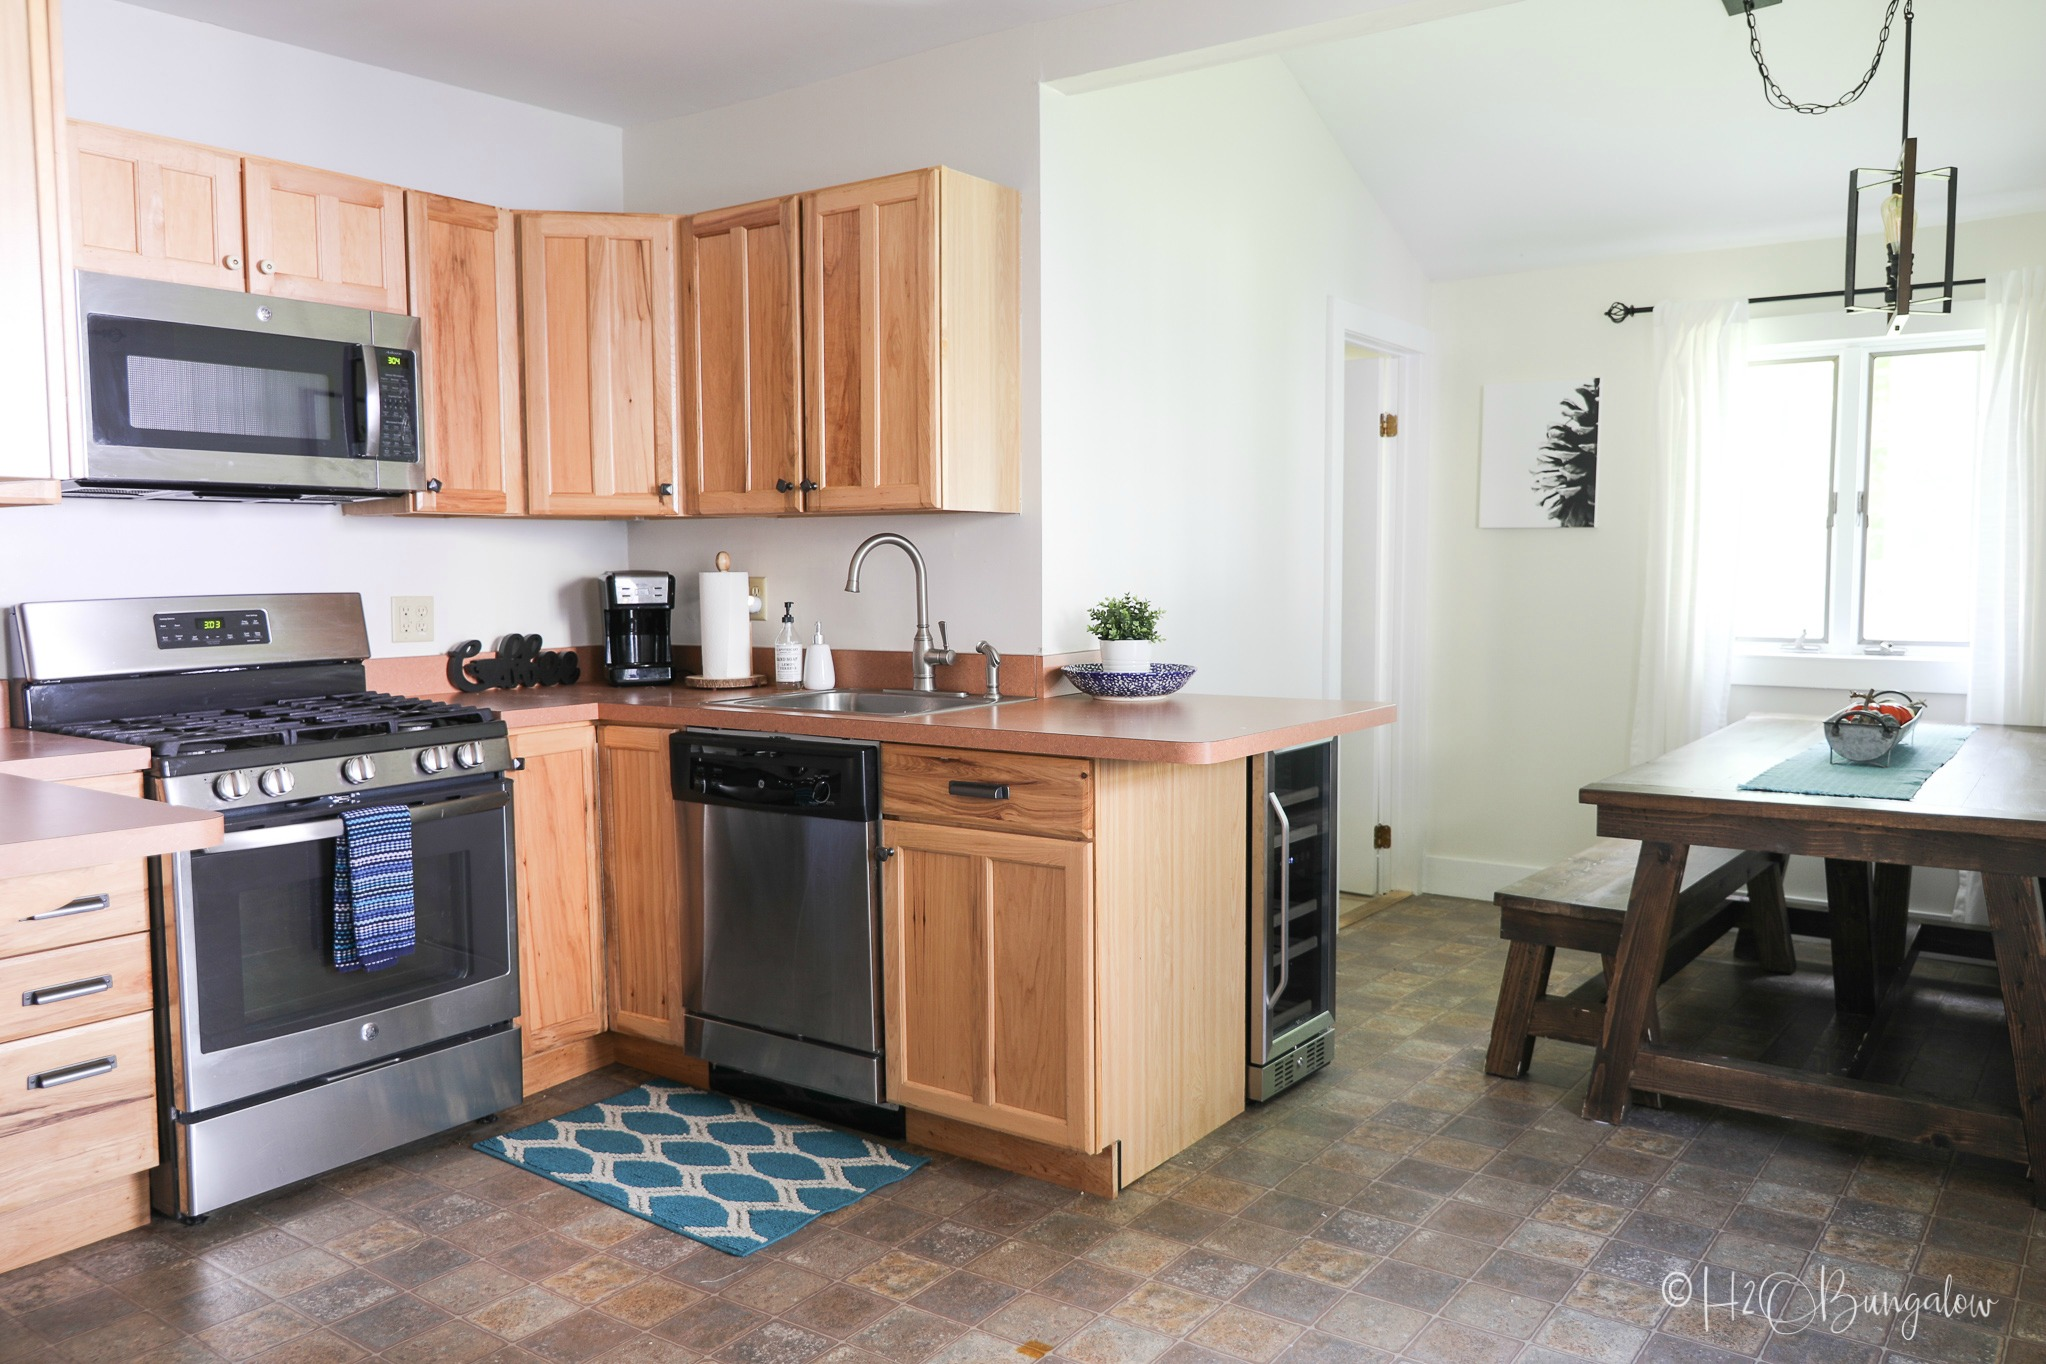 North House Lodge #54 kitchen, our upscale vacation rental in Ludlow, Vermont